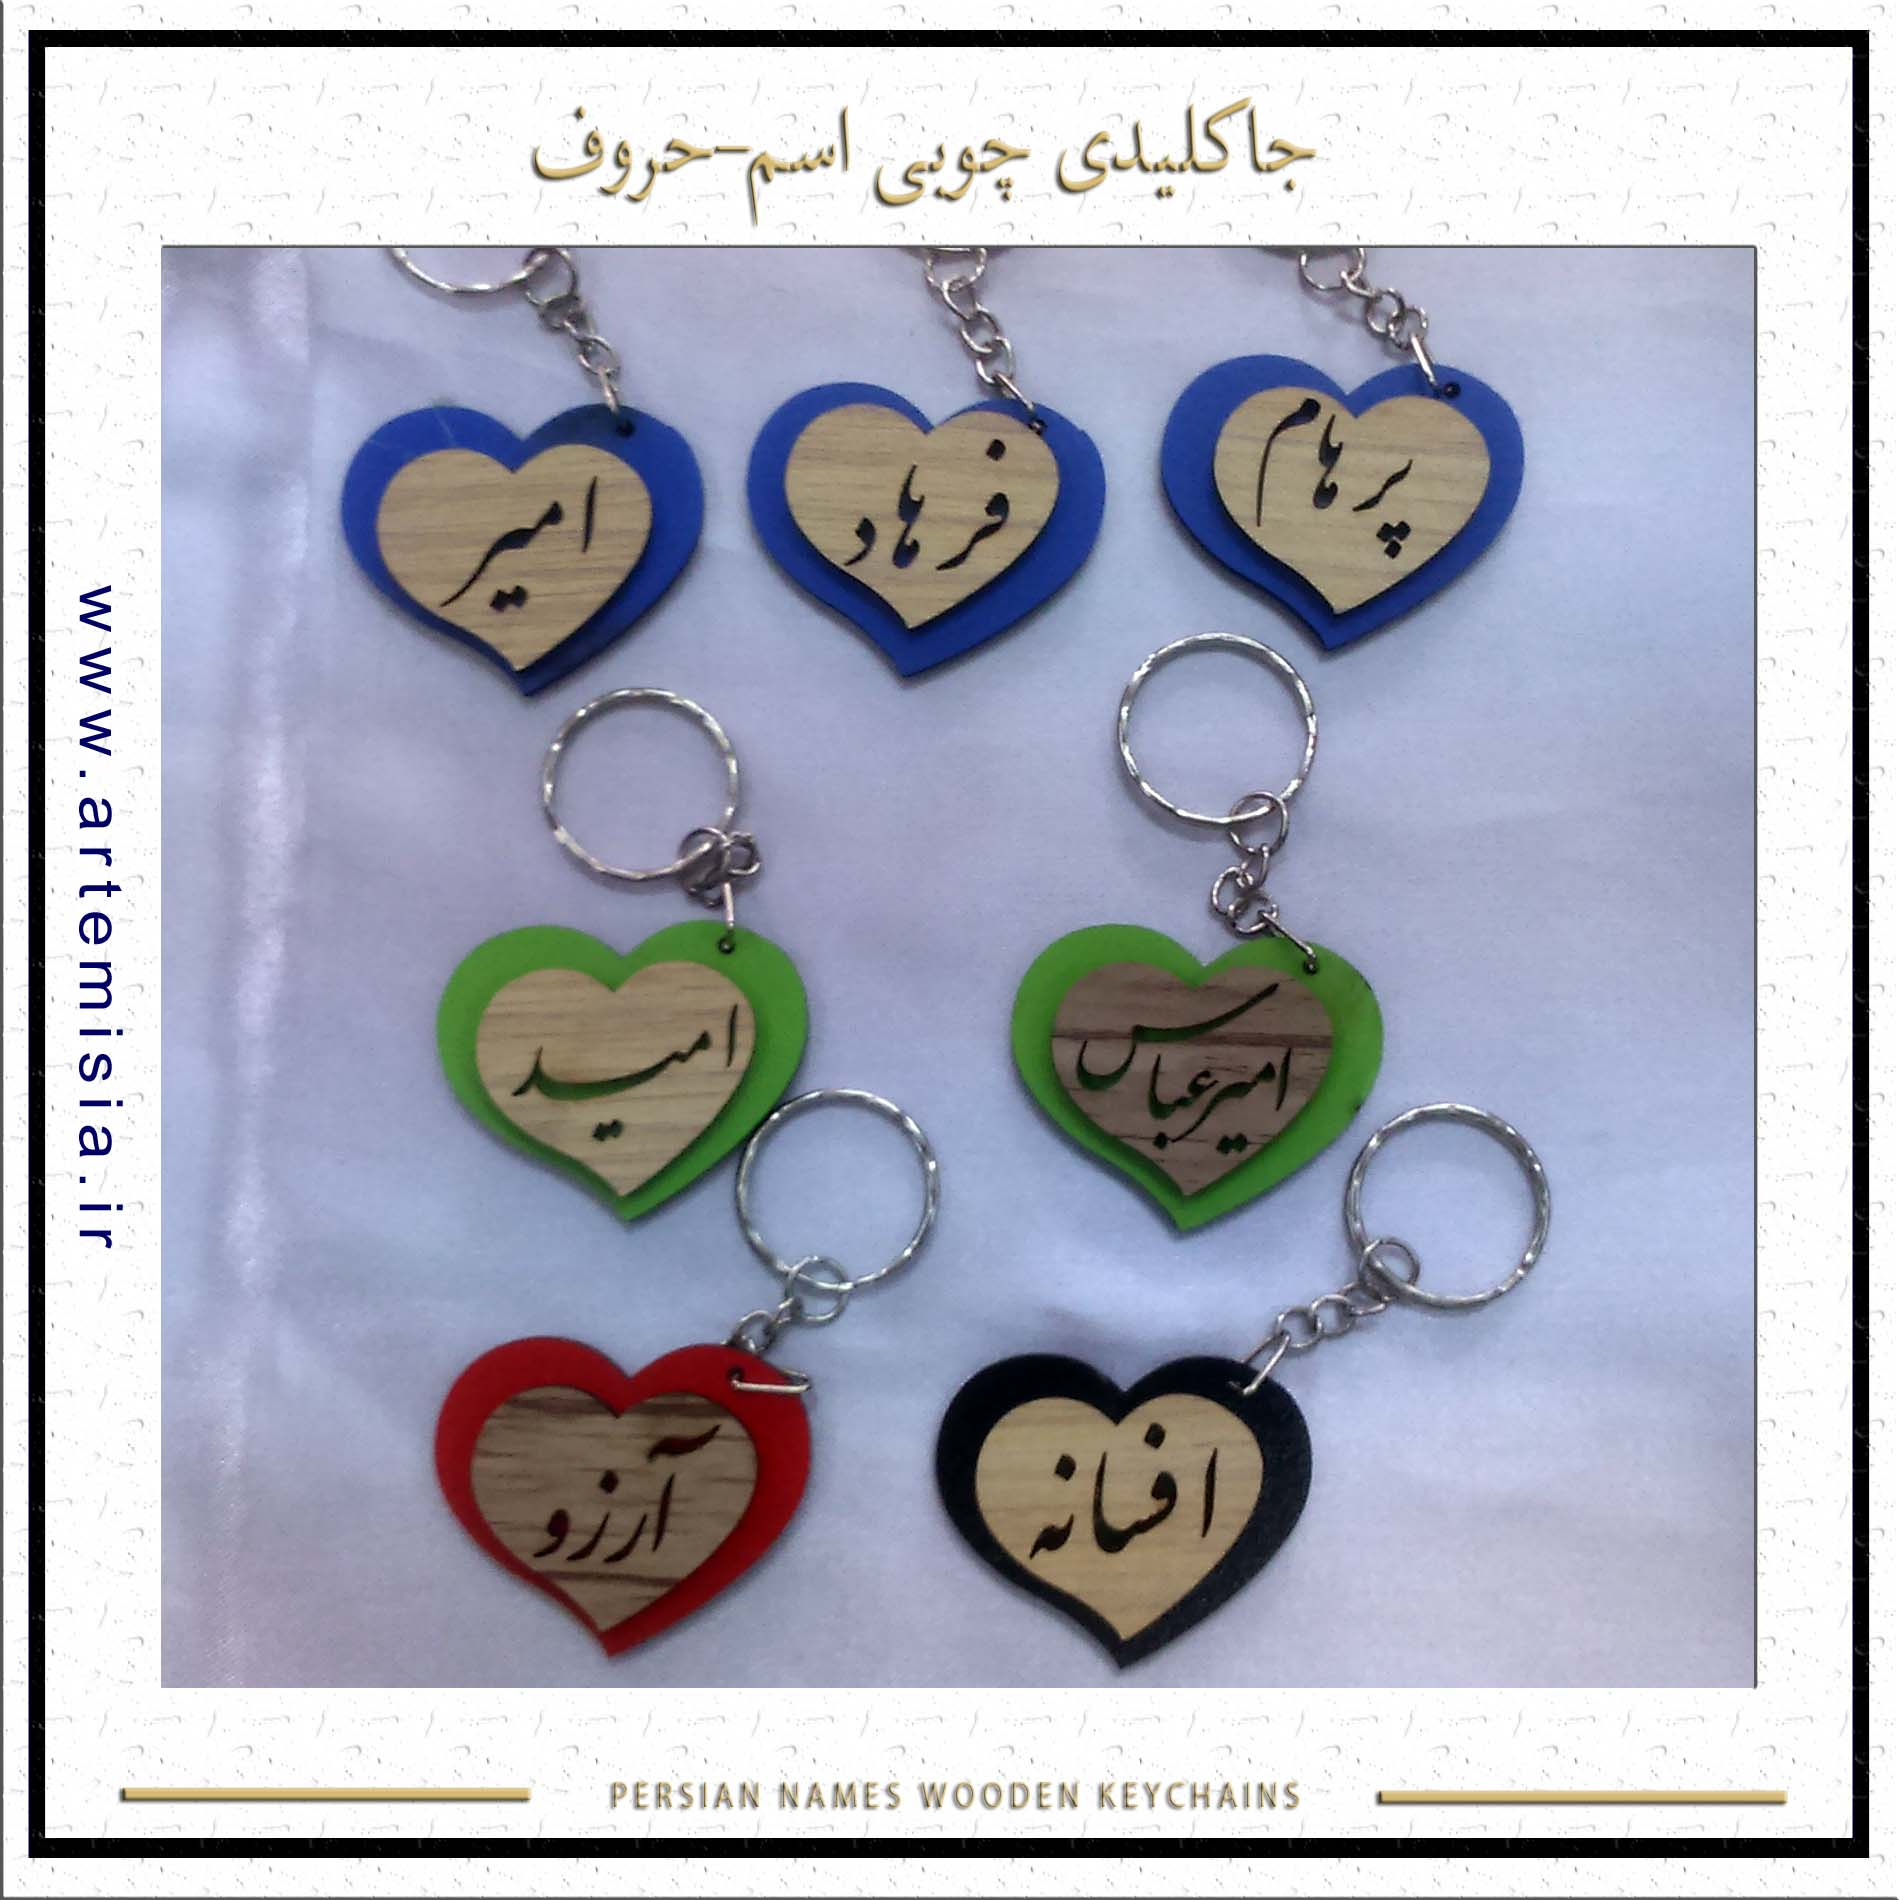 Persian Names Wooden Keychains